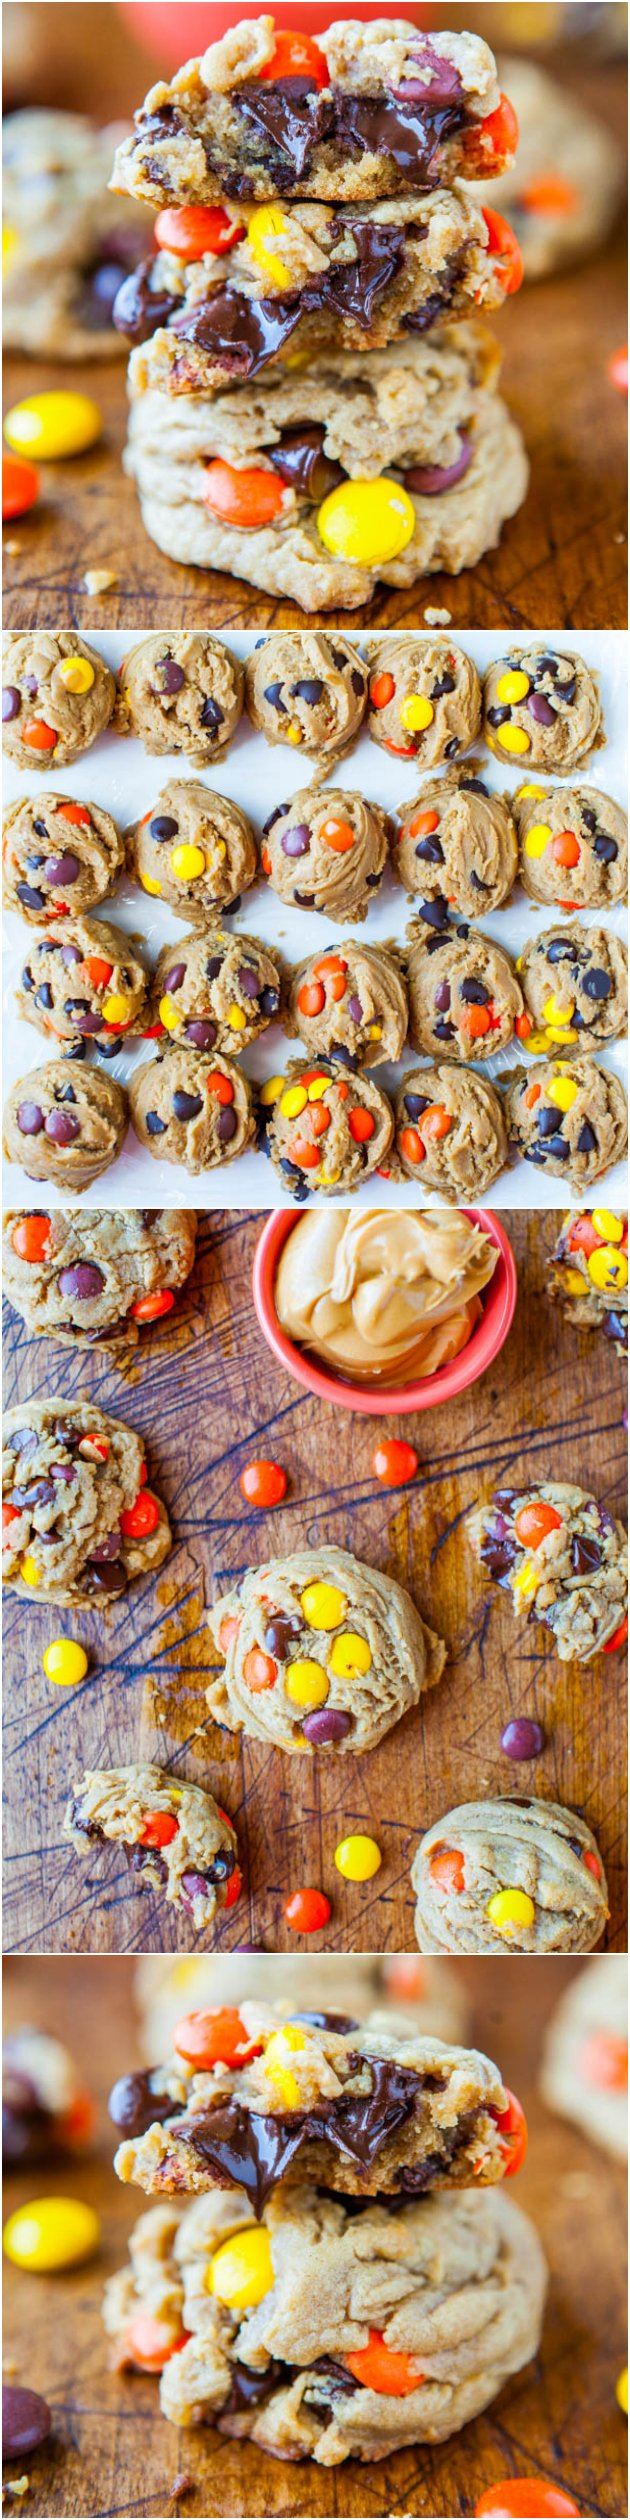 Peanut Butter Reese's Pieces Cookies— These Reese's Pieces cookies are are LOADED with Reese's Pieces and oozing, melted chocolate chips. Perfect any time of year!